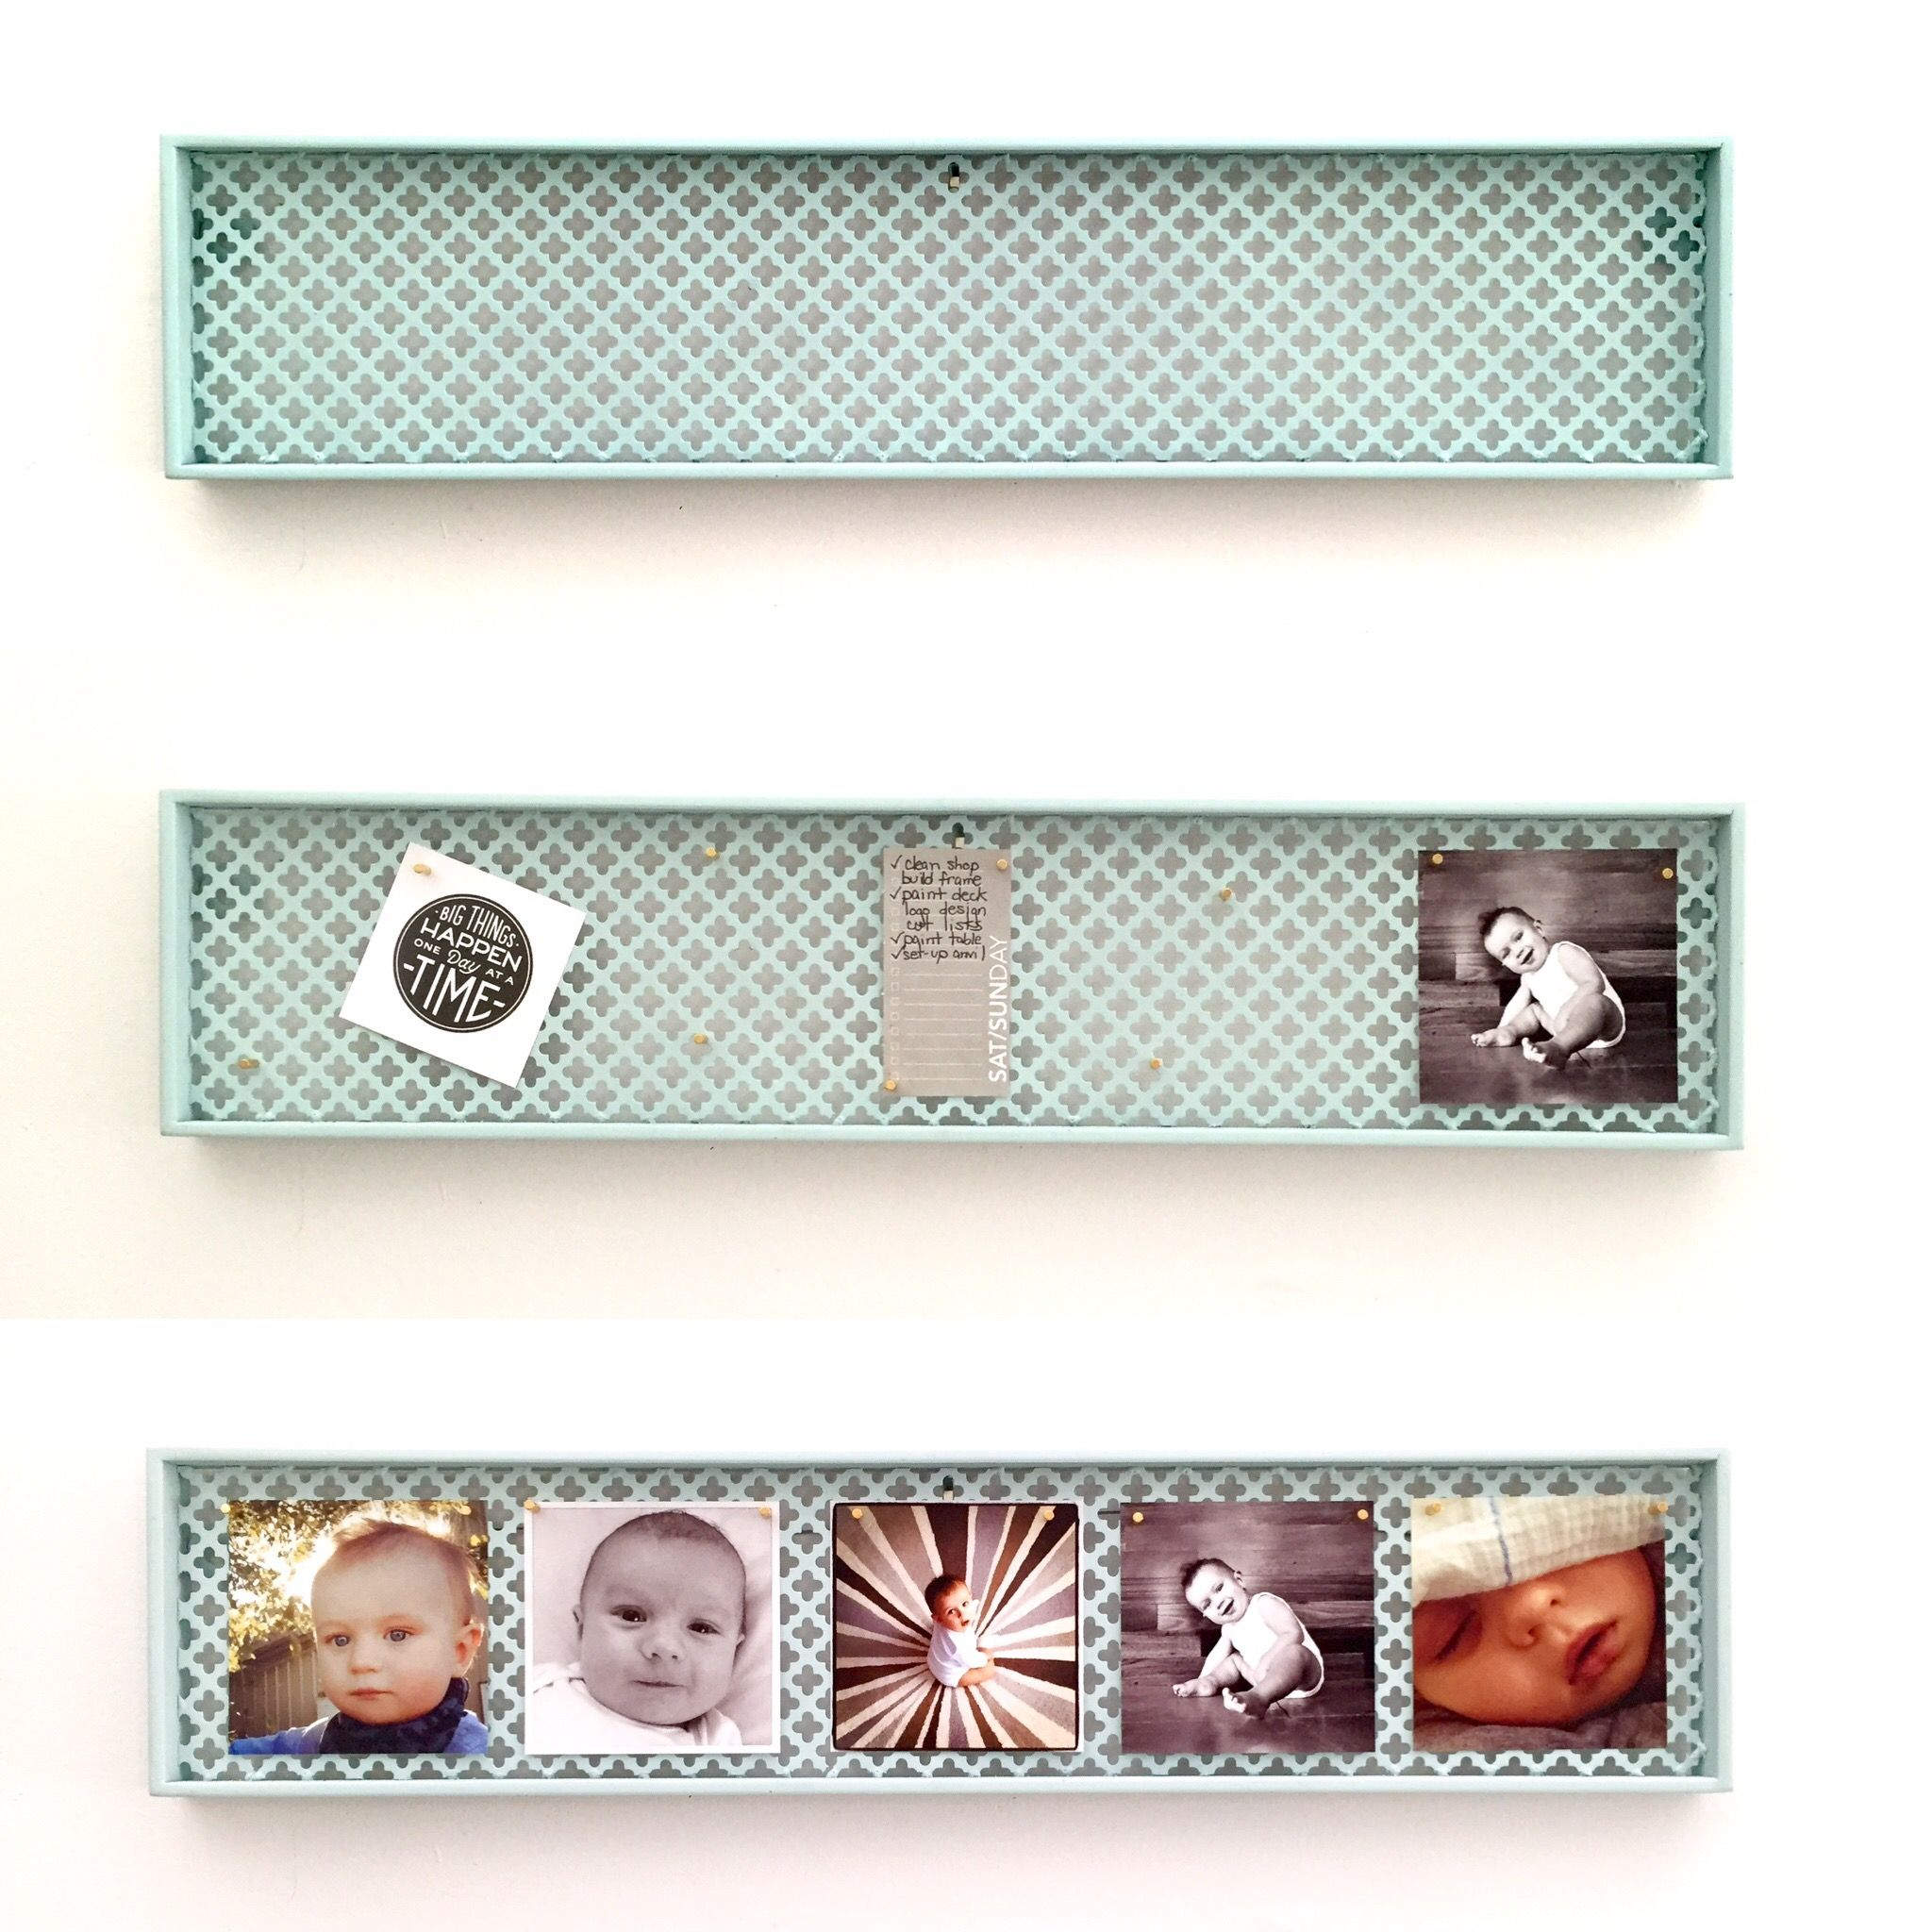 Decorative Perforated Magnet Board Instagram Photo